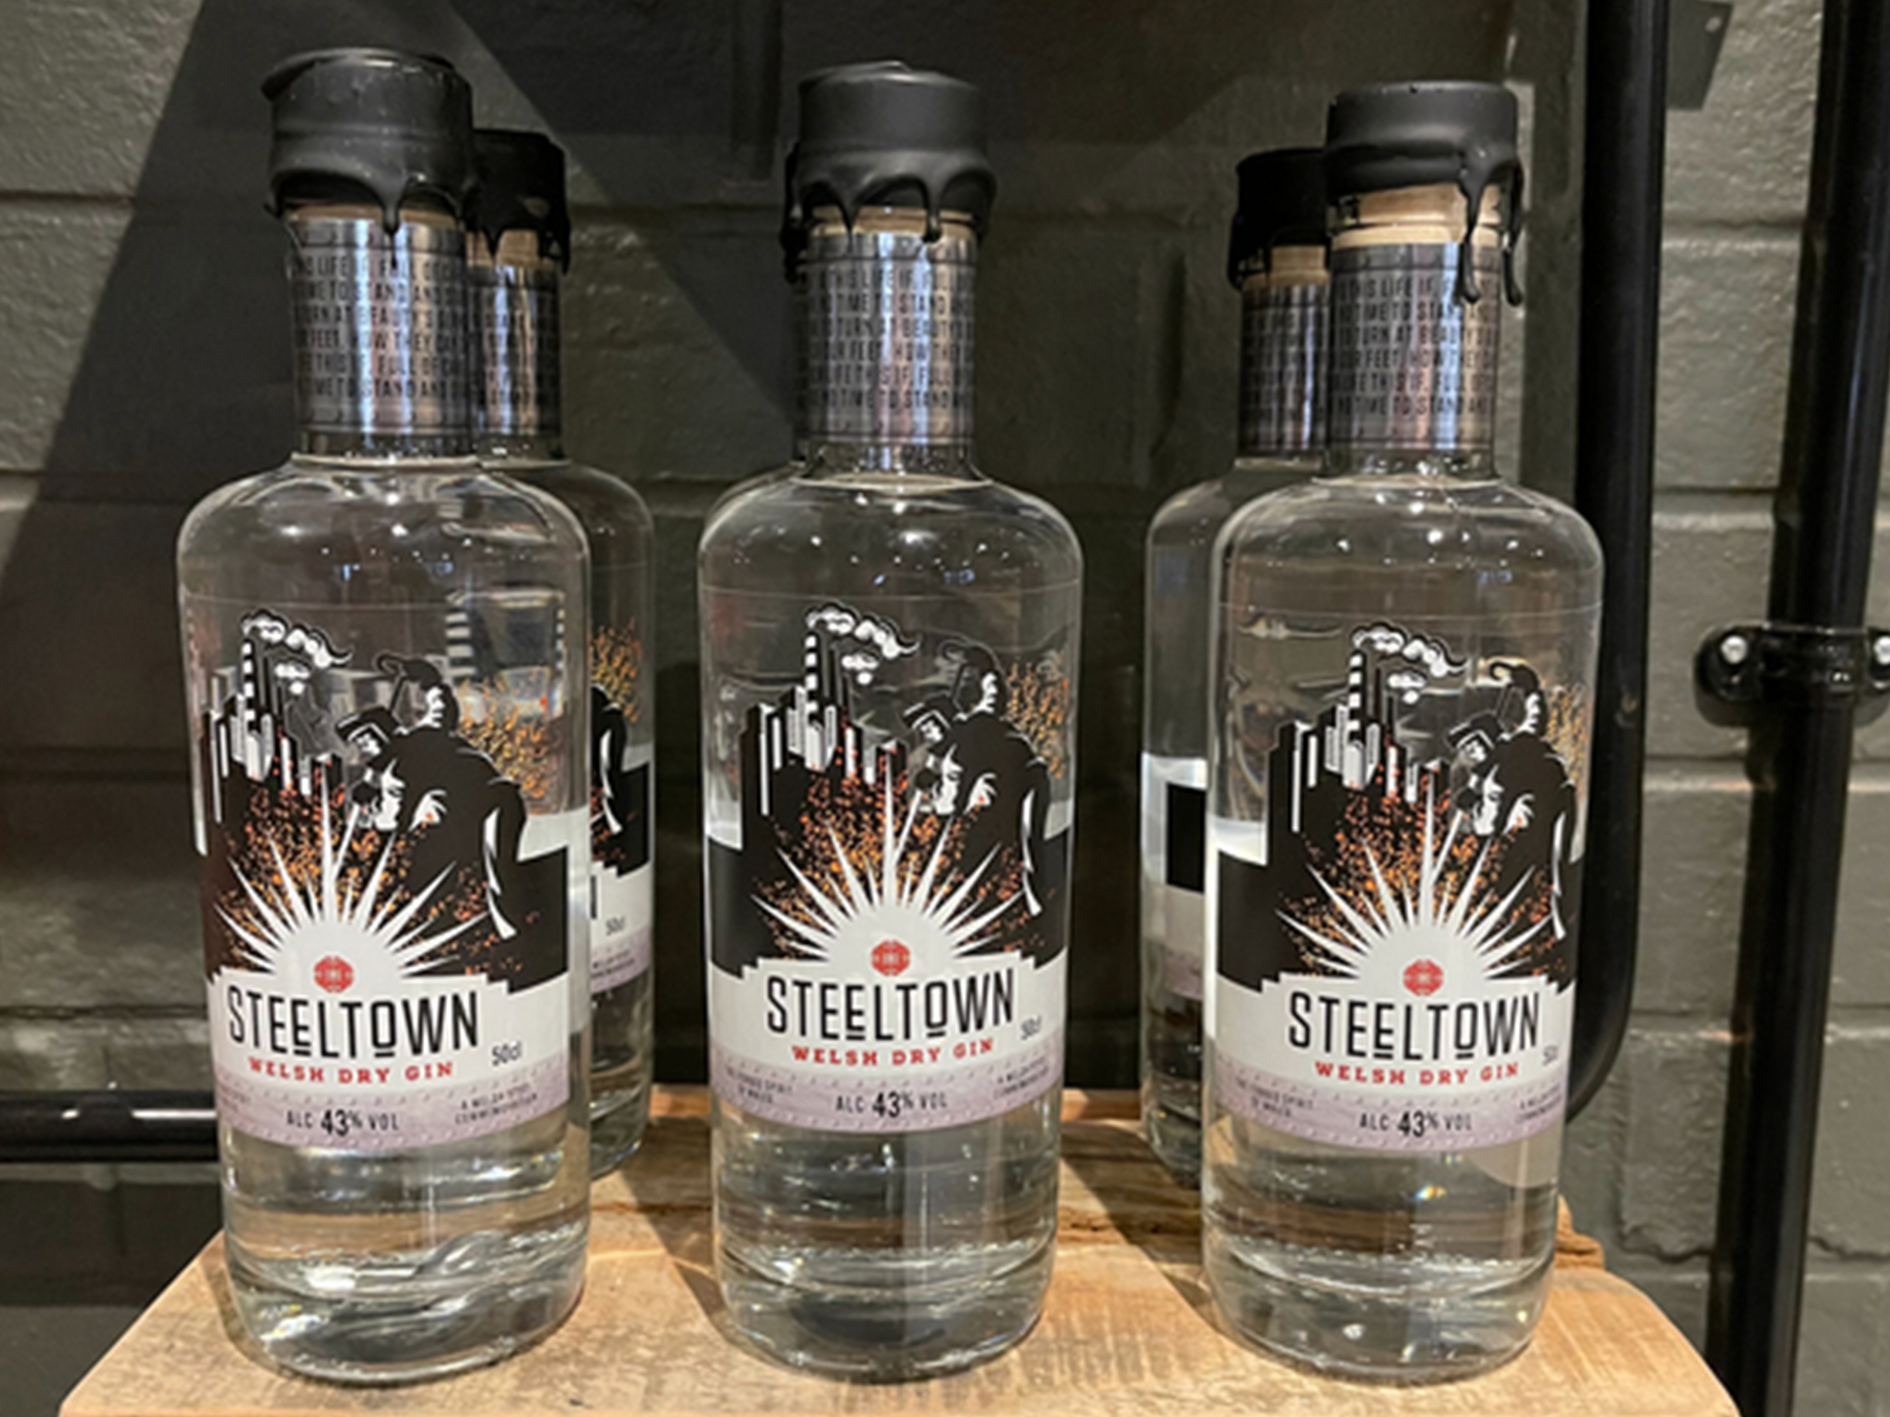 Steeltown Welsh Dry Gin from Spirit of Wales Distillery